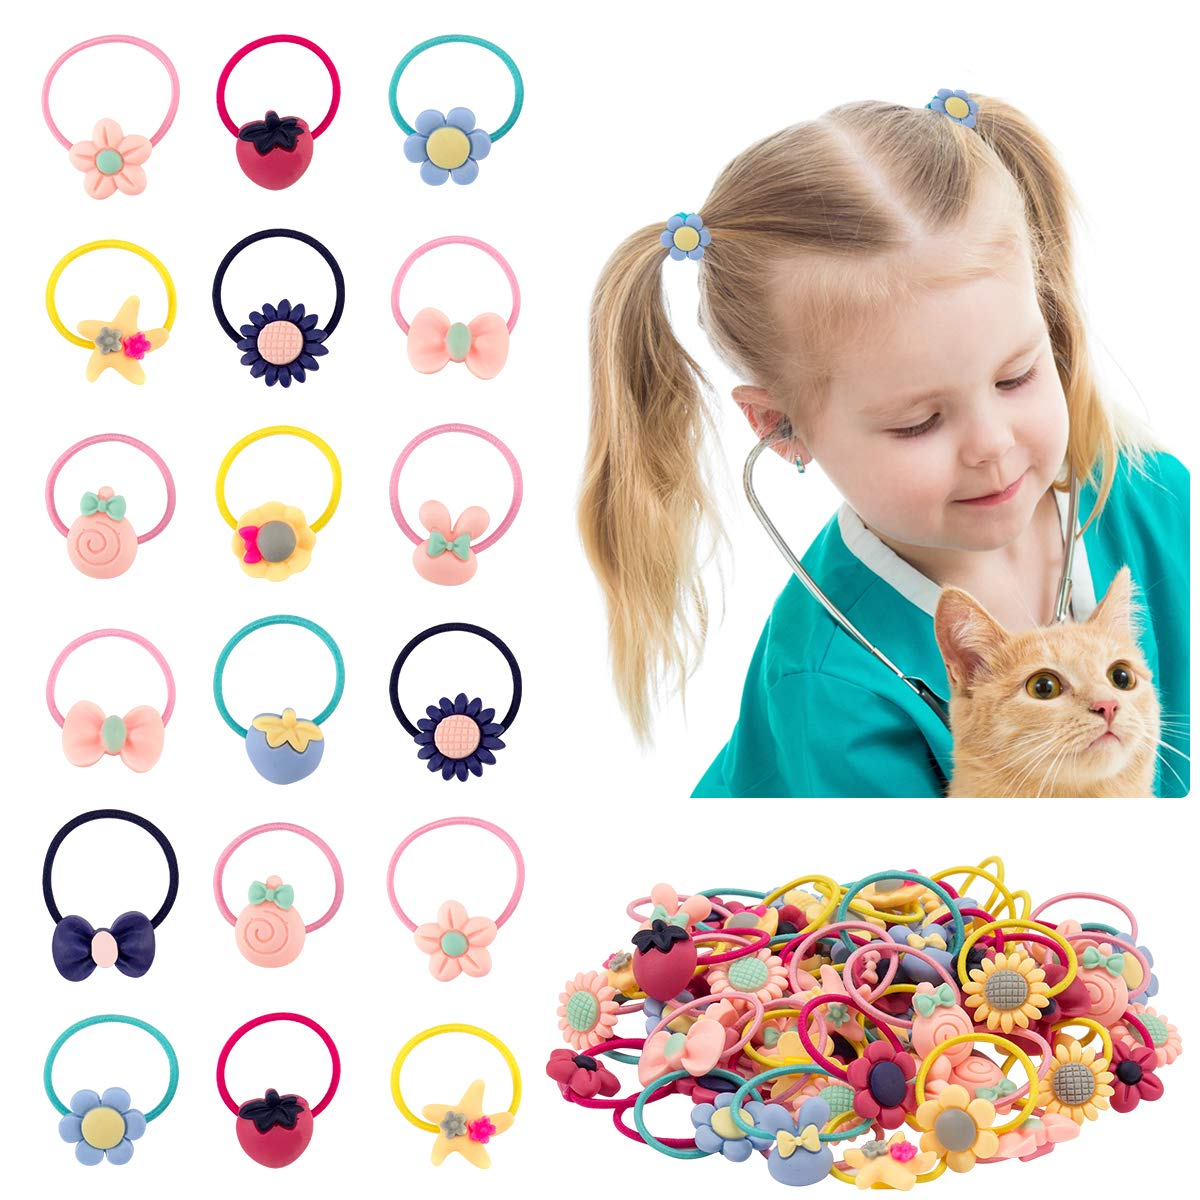 Madholly 100 pieces Baby Girls Hair Ties, Little Girl Bows Hair Elastic Ropes, Toddler Pigtail Ponytail Holder